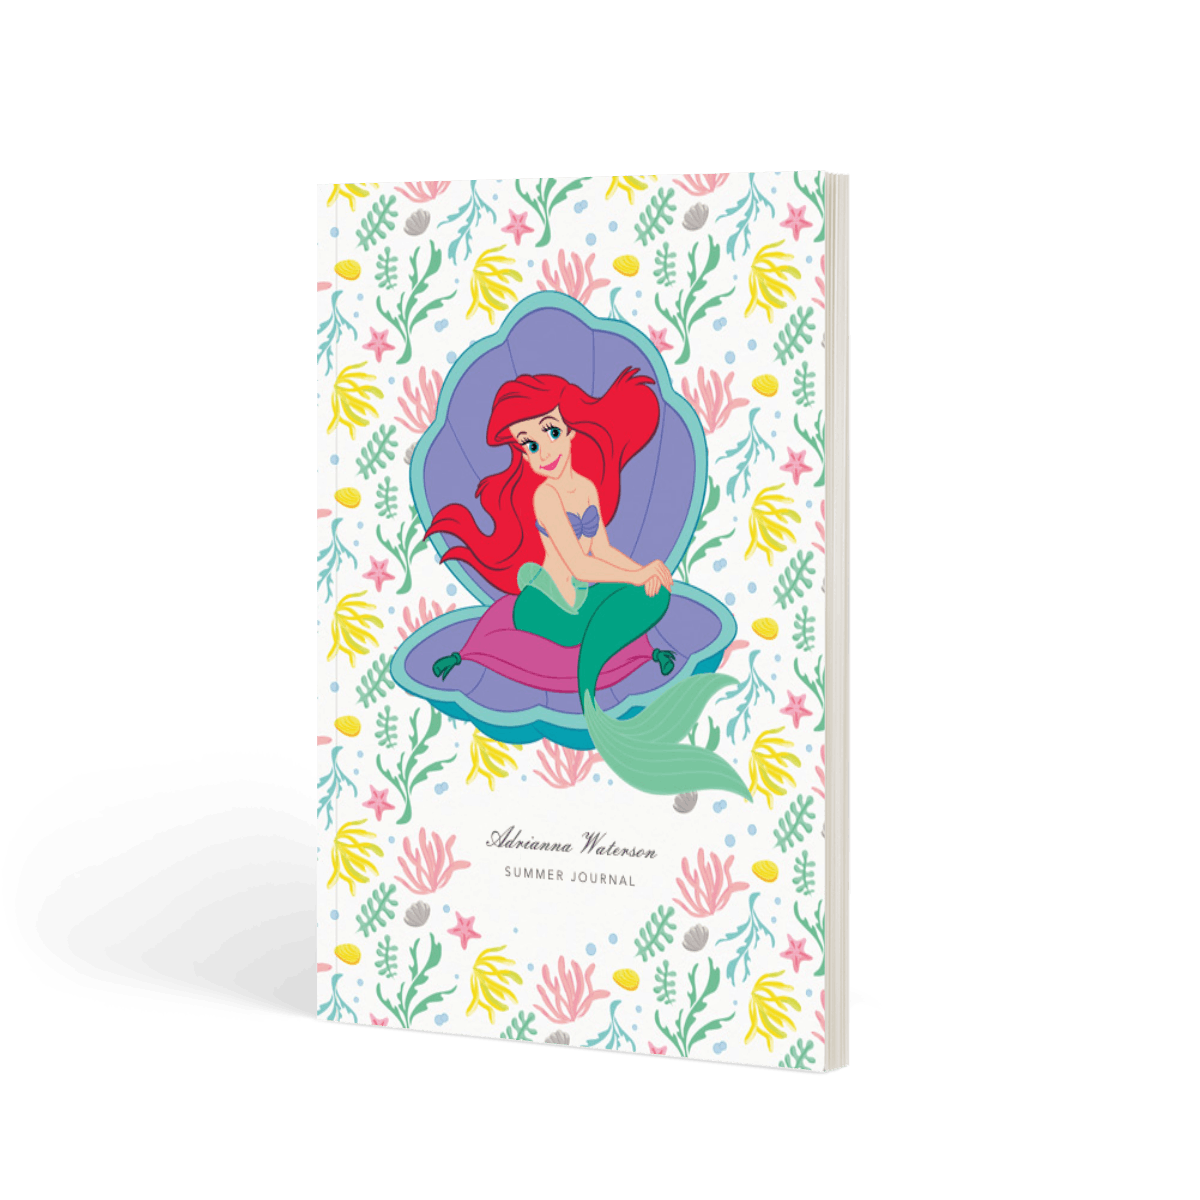 Https%3a%2f%2fwww.papier.com%2fproduct image%2f54120%2f6%2fthe little mermaid 13018 front 1575301851.png?ixlib=rb 1.1